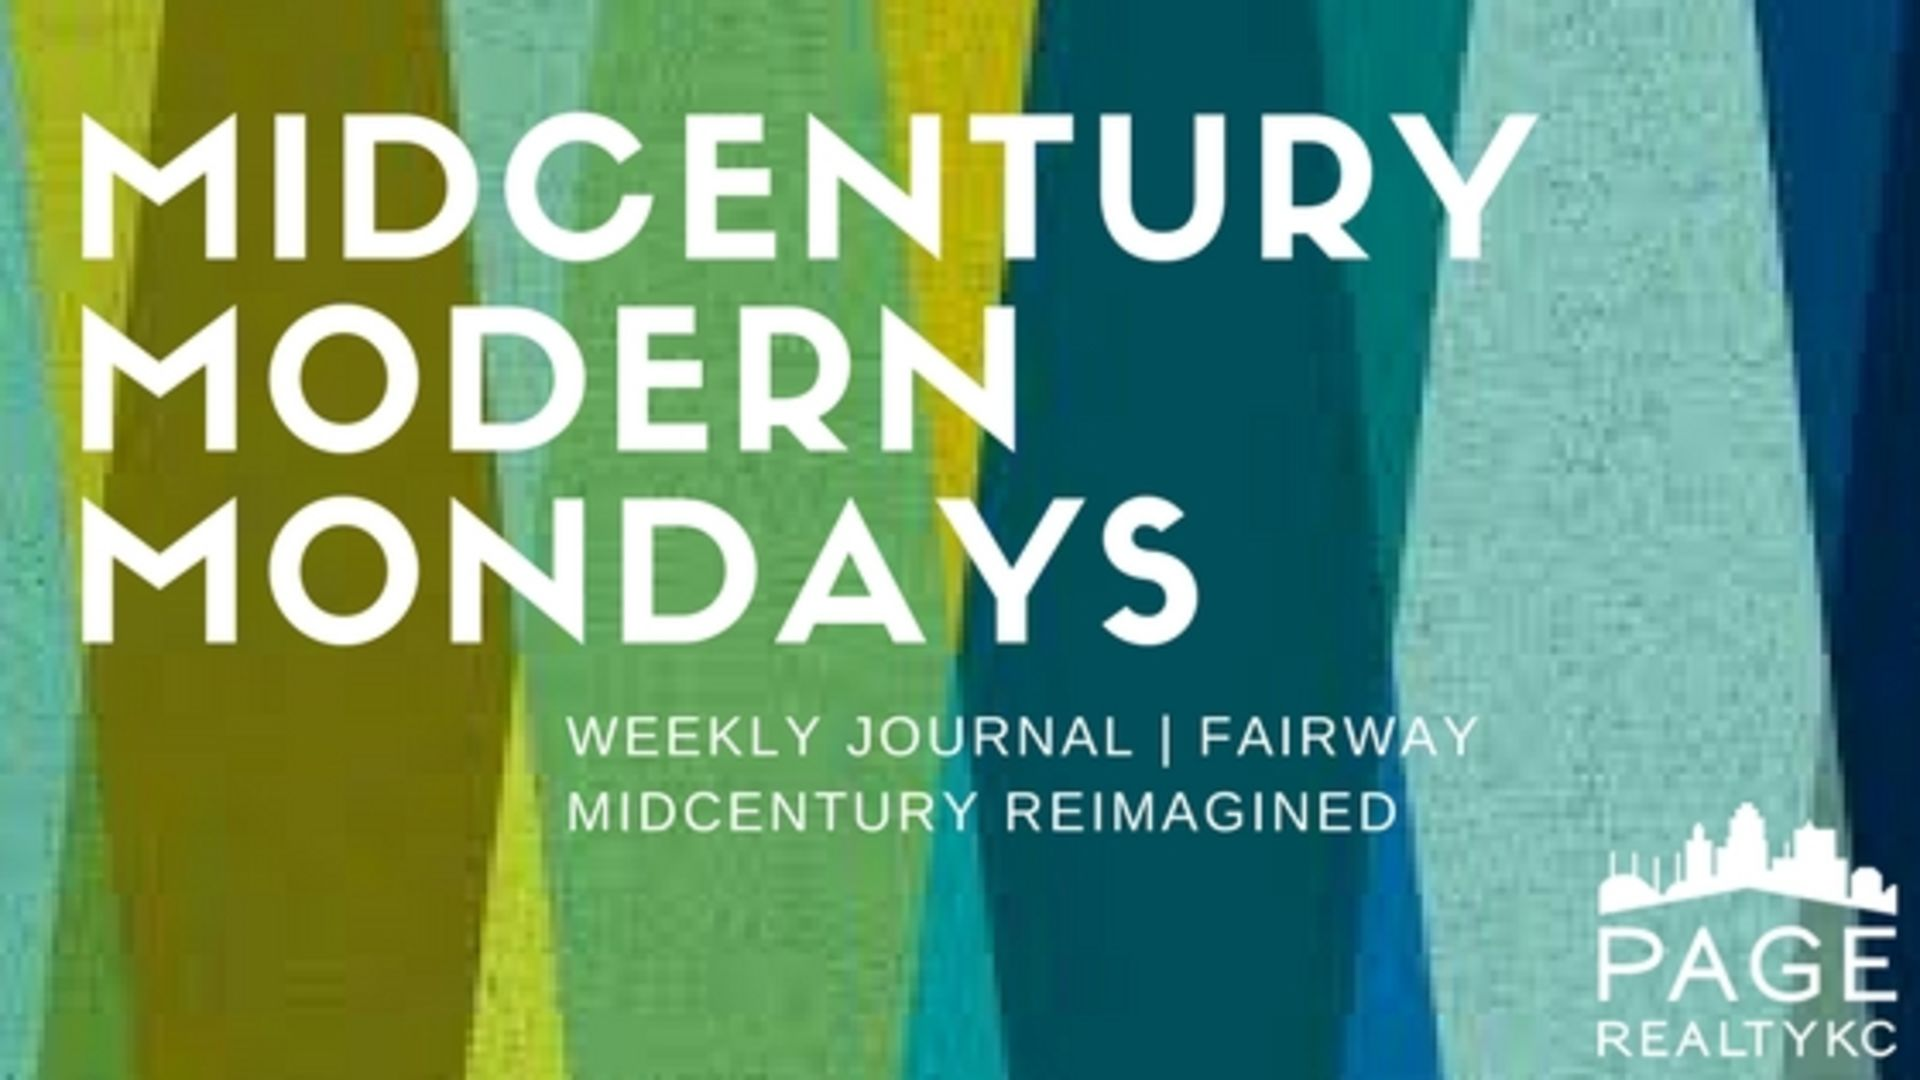 Midcentury Modern Monday July 24th (oops 25th)